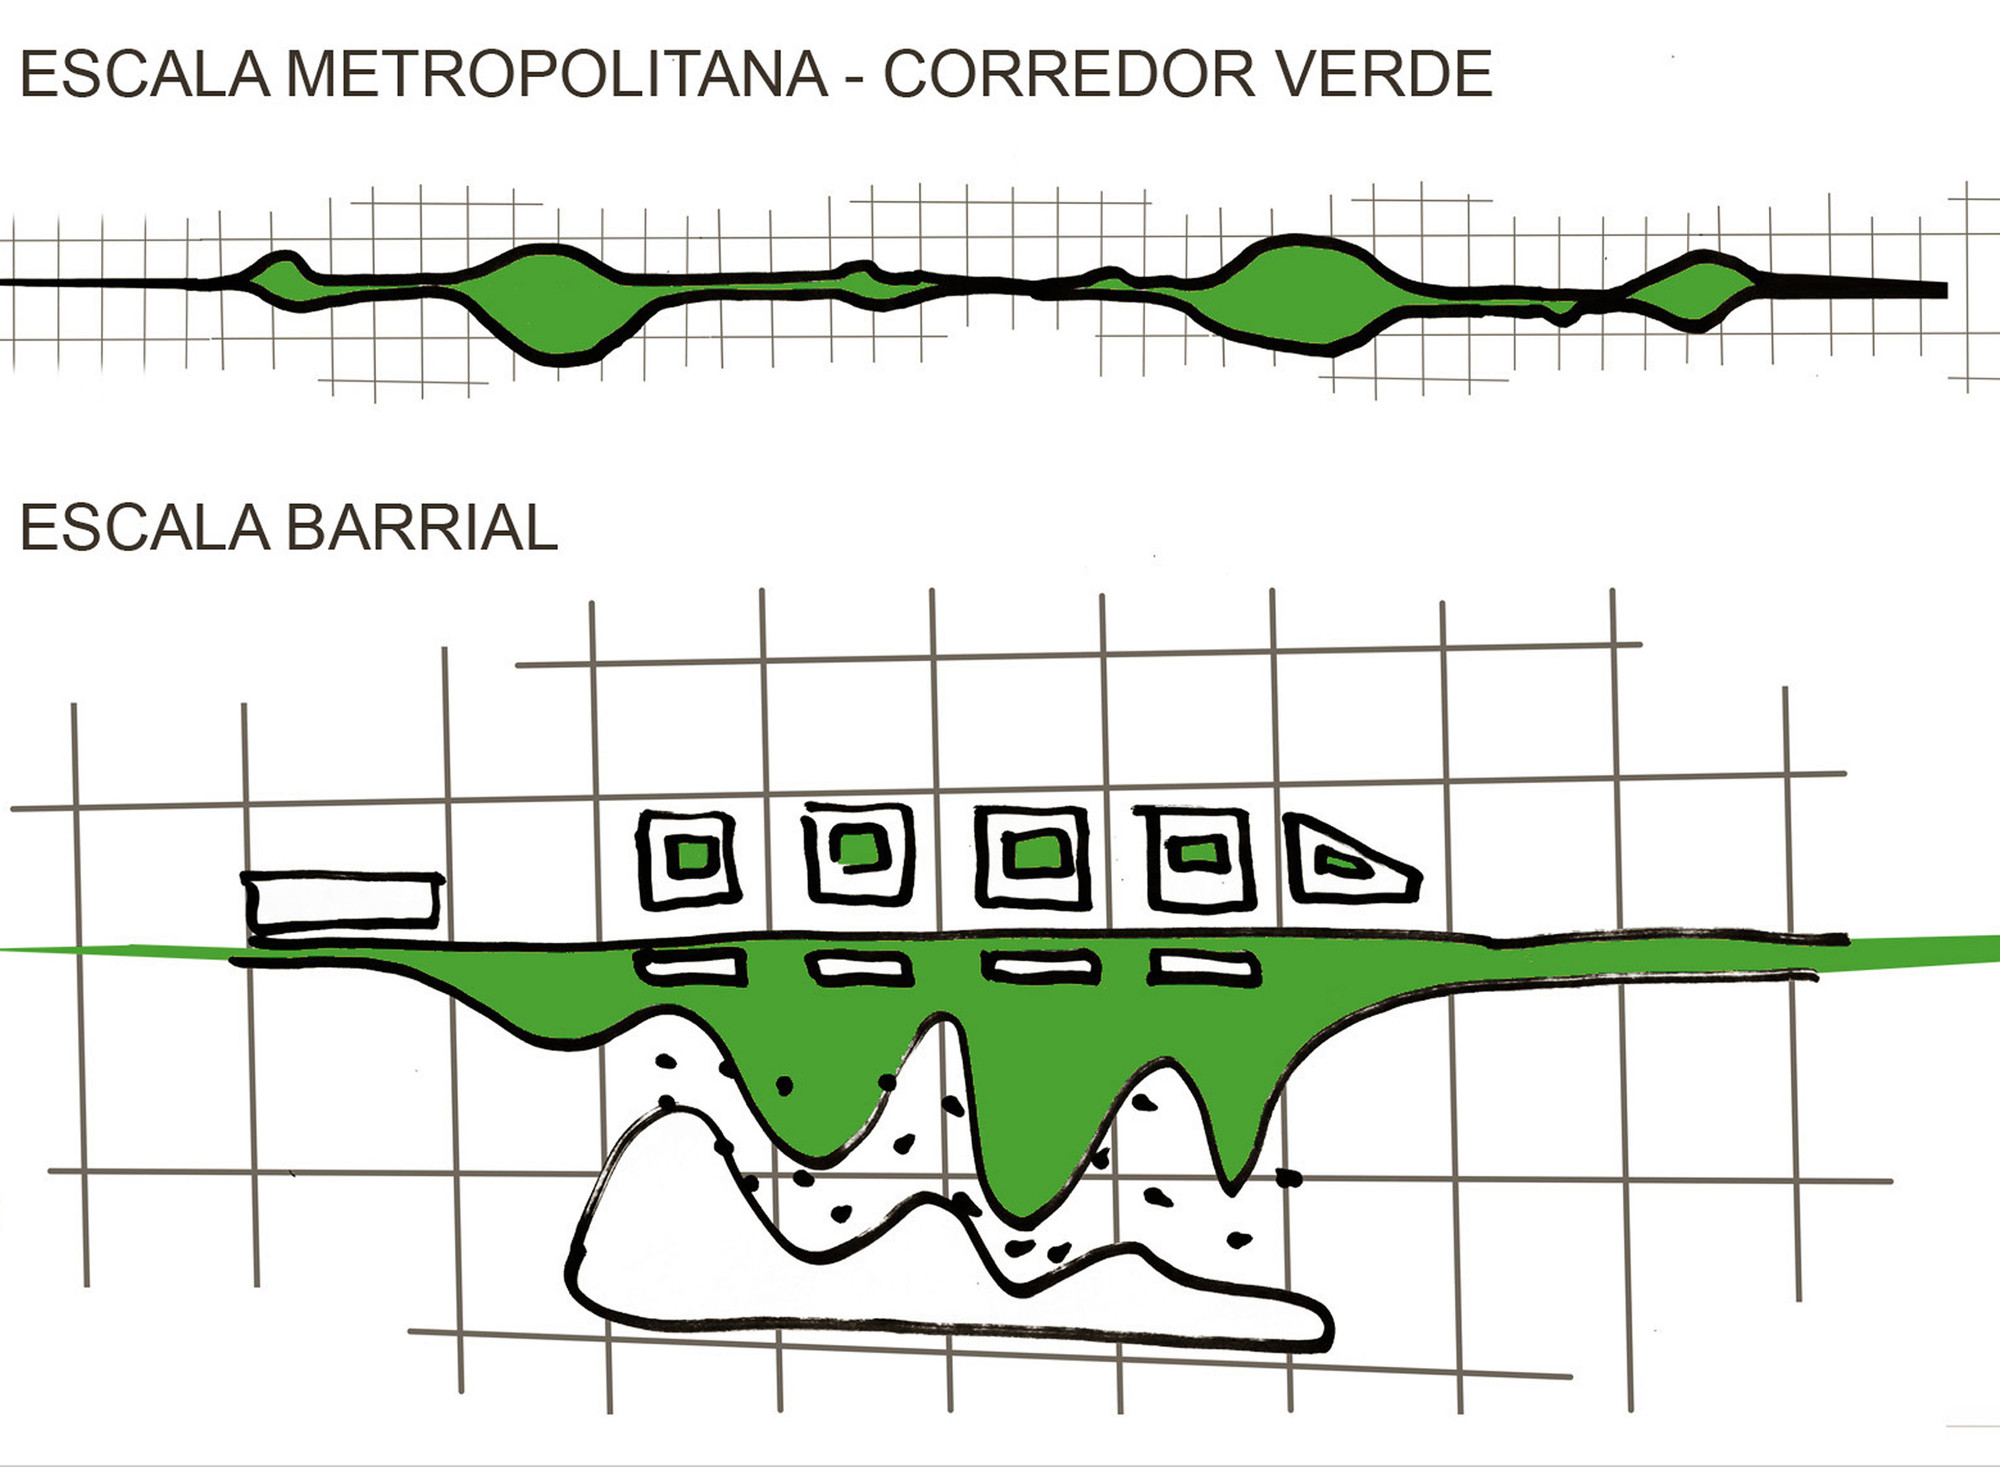 Esquema Verde. Image Courtesy of Edgardo Barone y Gabriela Lucchini